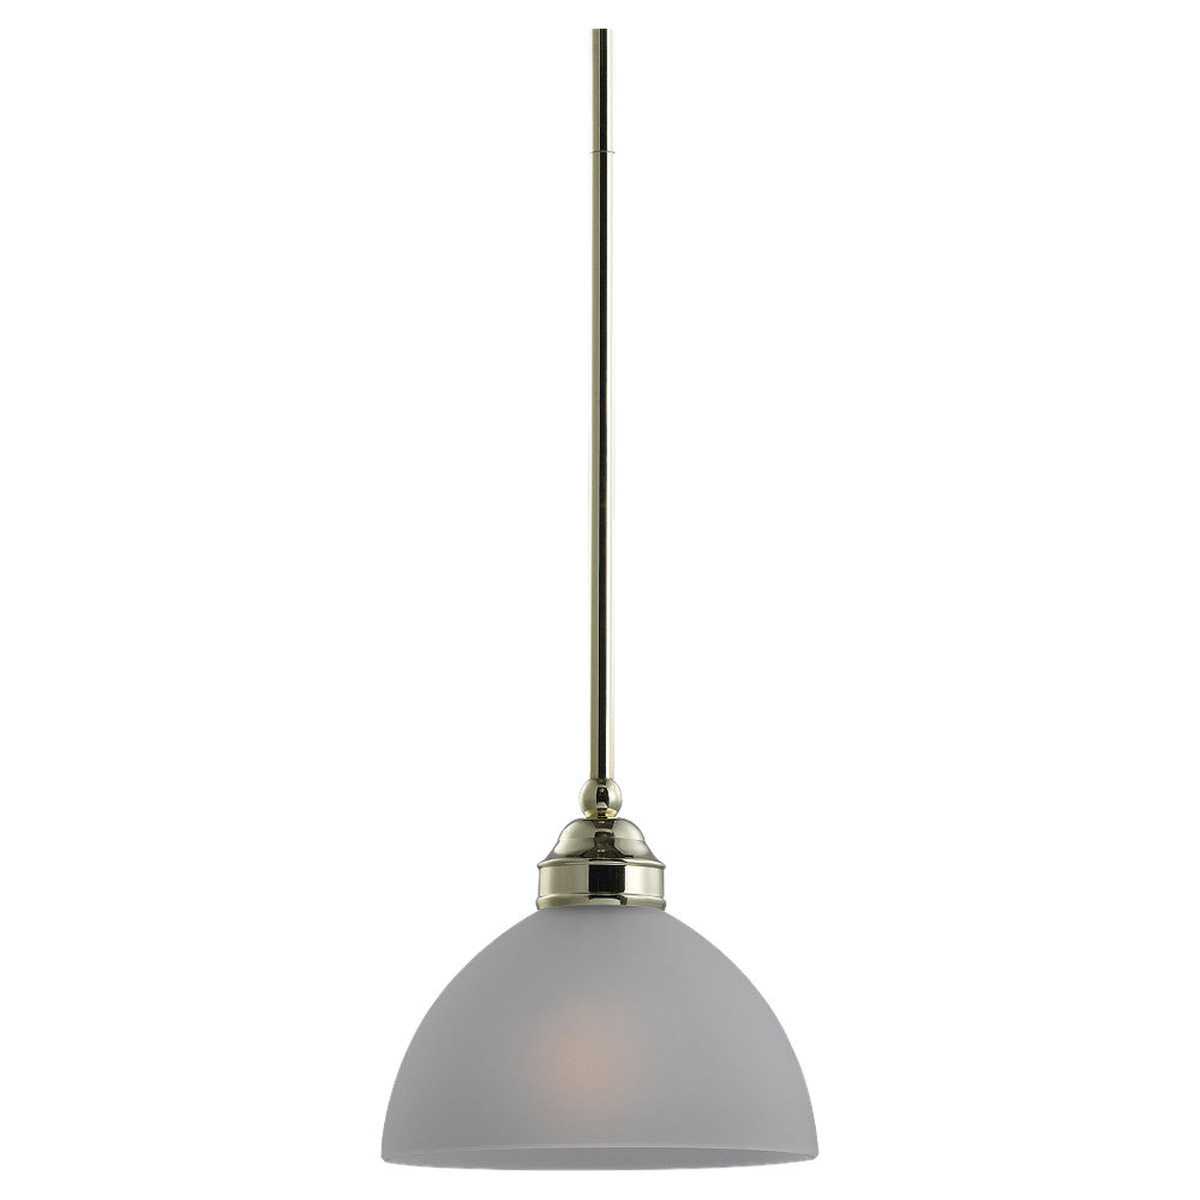 Sea Gull Lighting Linwood 1 Light Mini Pendant in Polished Brass 61225-02